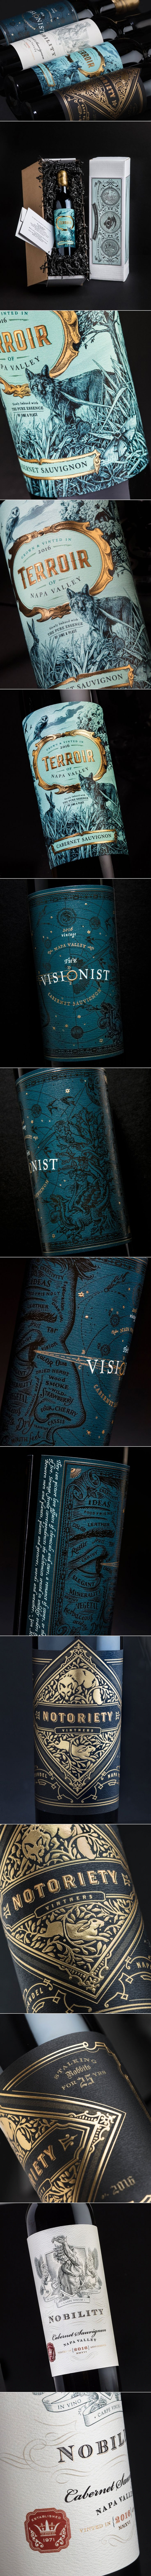 These Conceptual Wine Bottles are Decadent and Detailed — The Dieline - Branding & Packaging Design